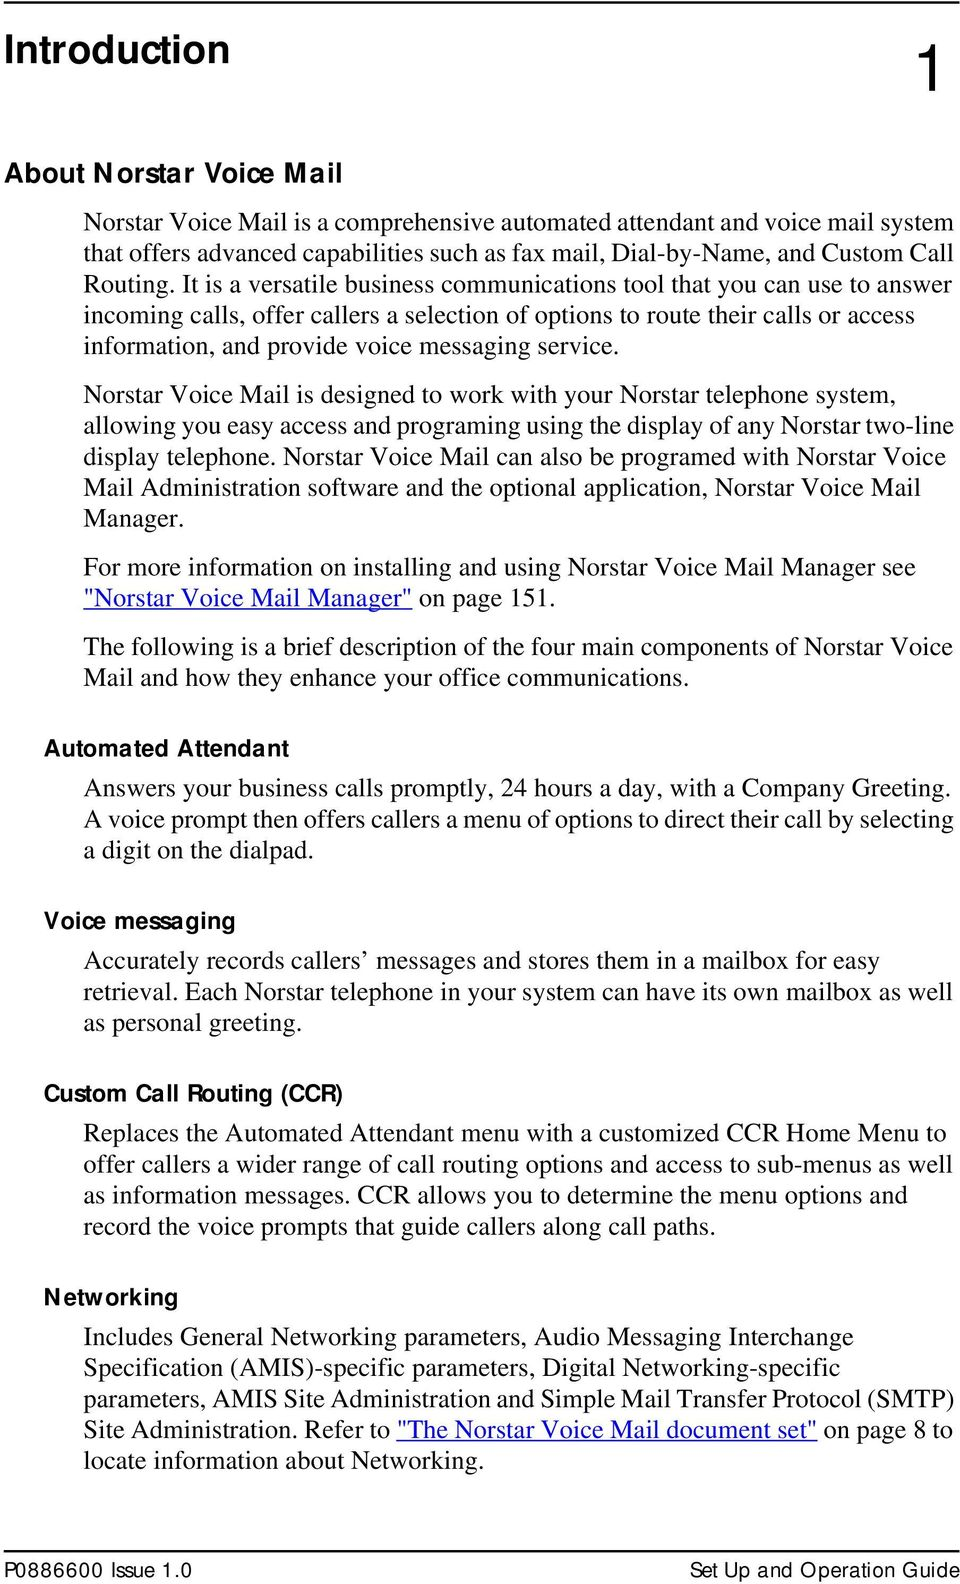 Norstar Voice Mail 4 0 Set Up and Operation Guide - PDF